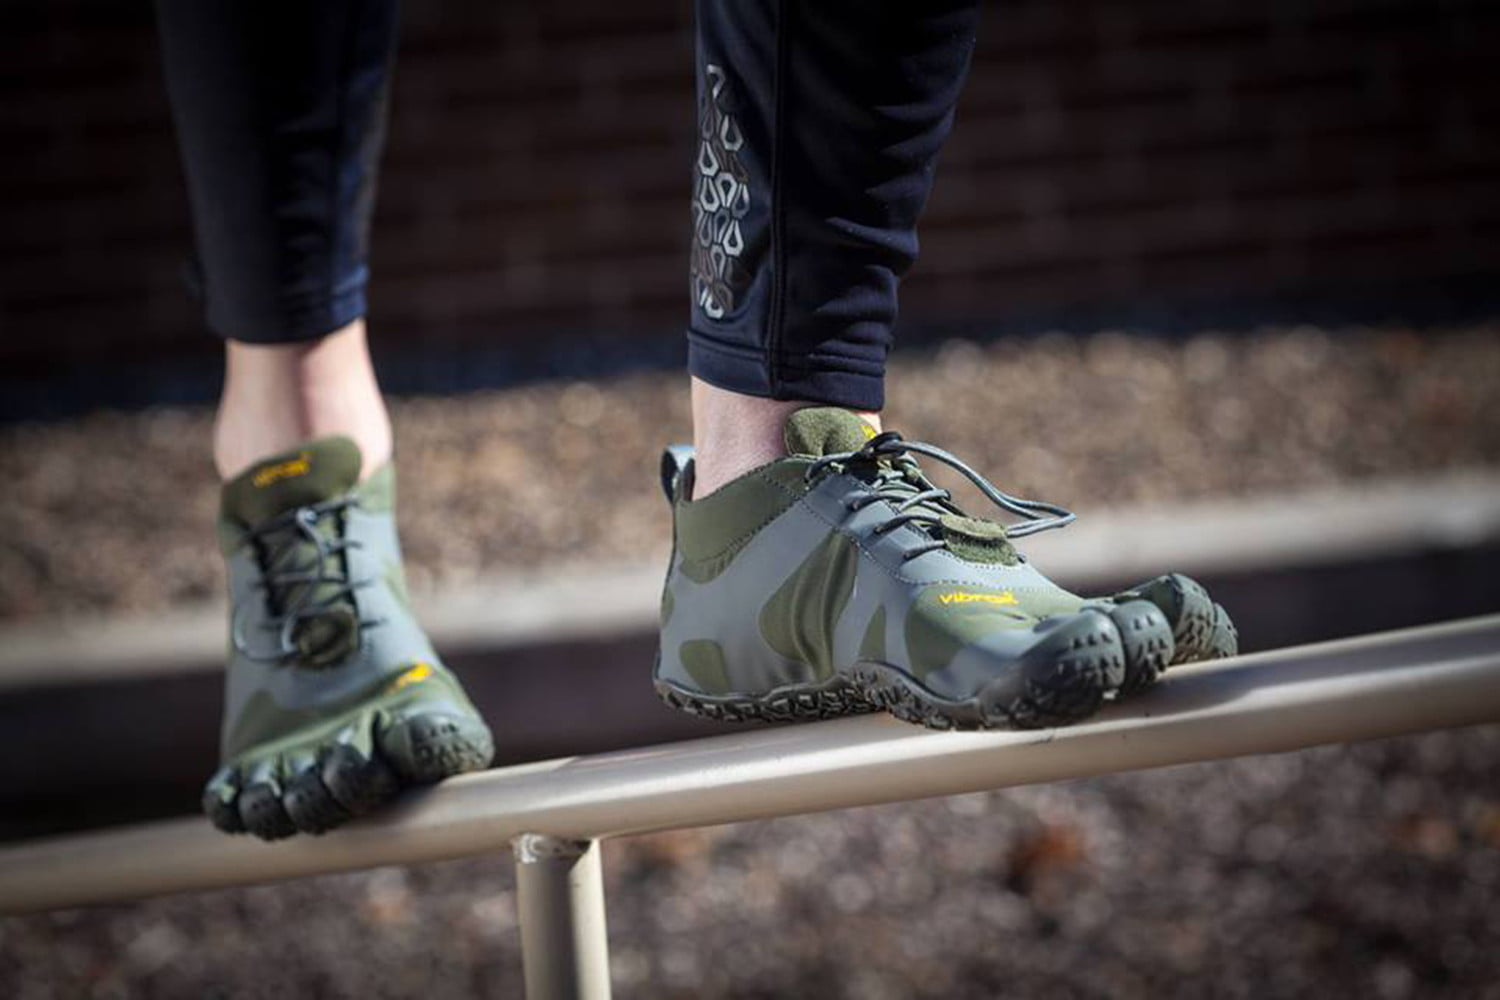 Inside Vibram footwear and the barefoot technology debate